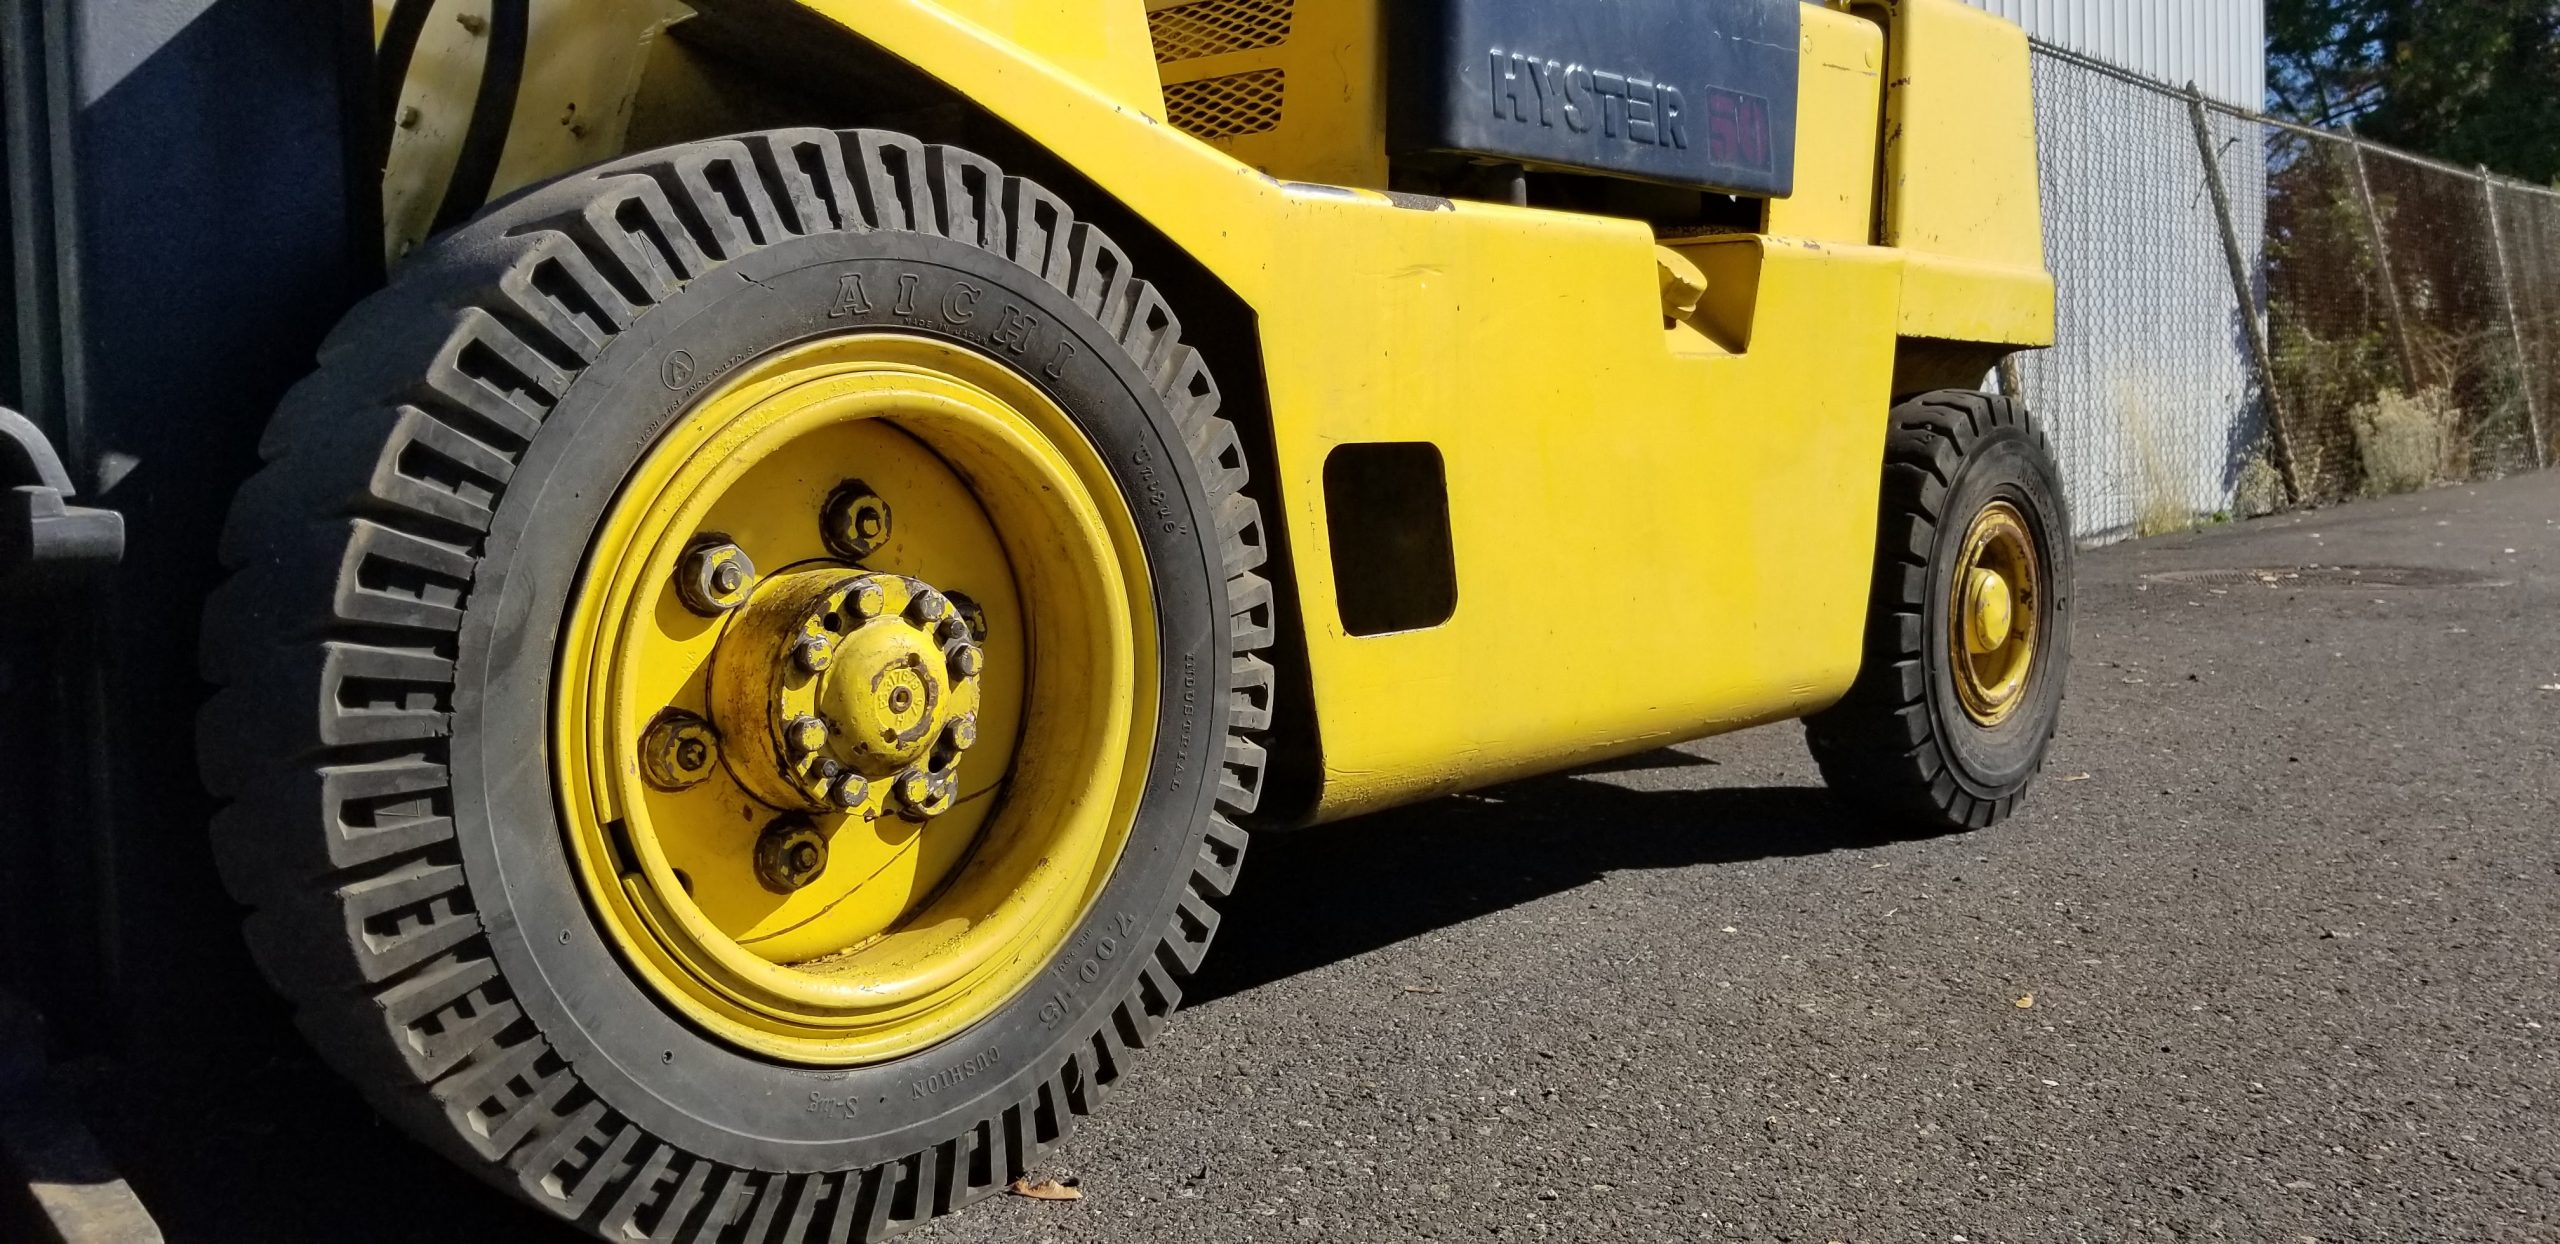 1990 Hyster H50XL For Sale 20210924_151422-scaled